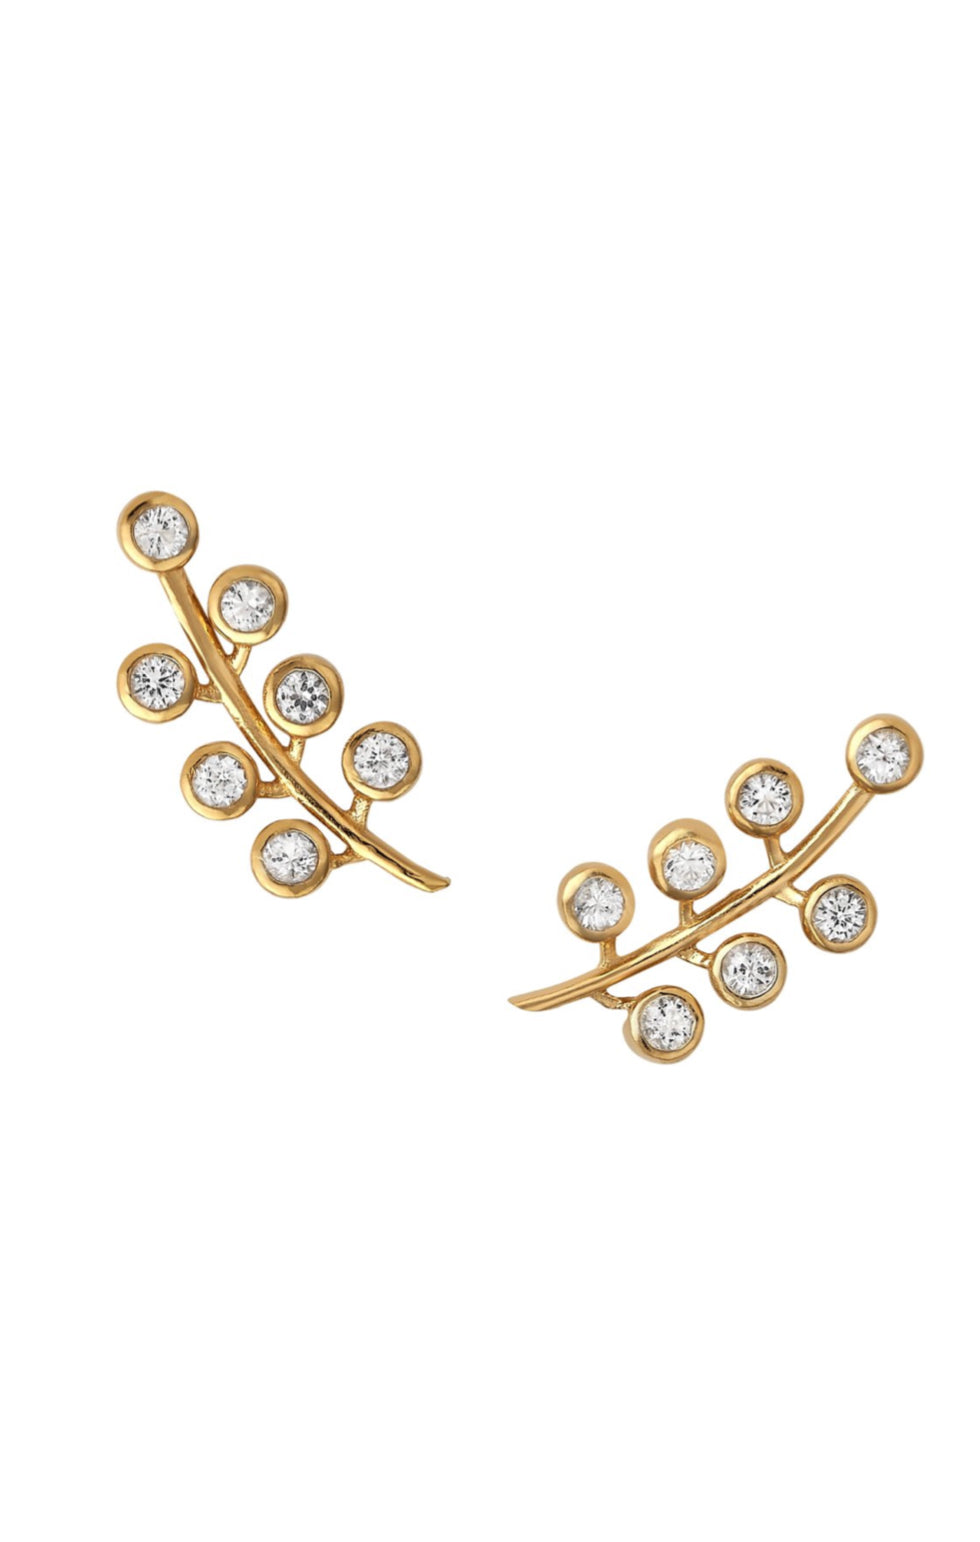 Berry Pave Earring - White Topaz